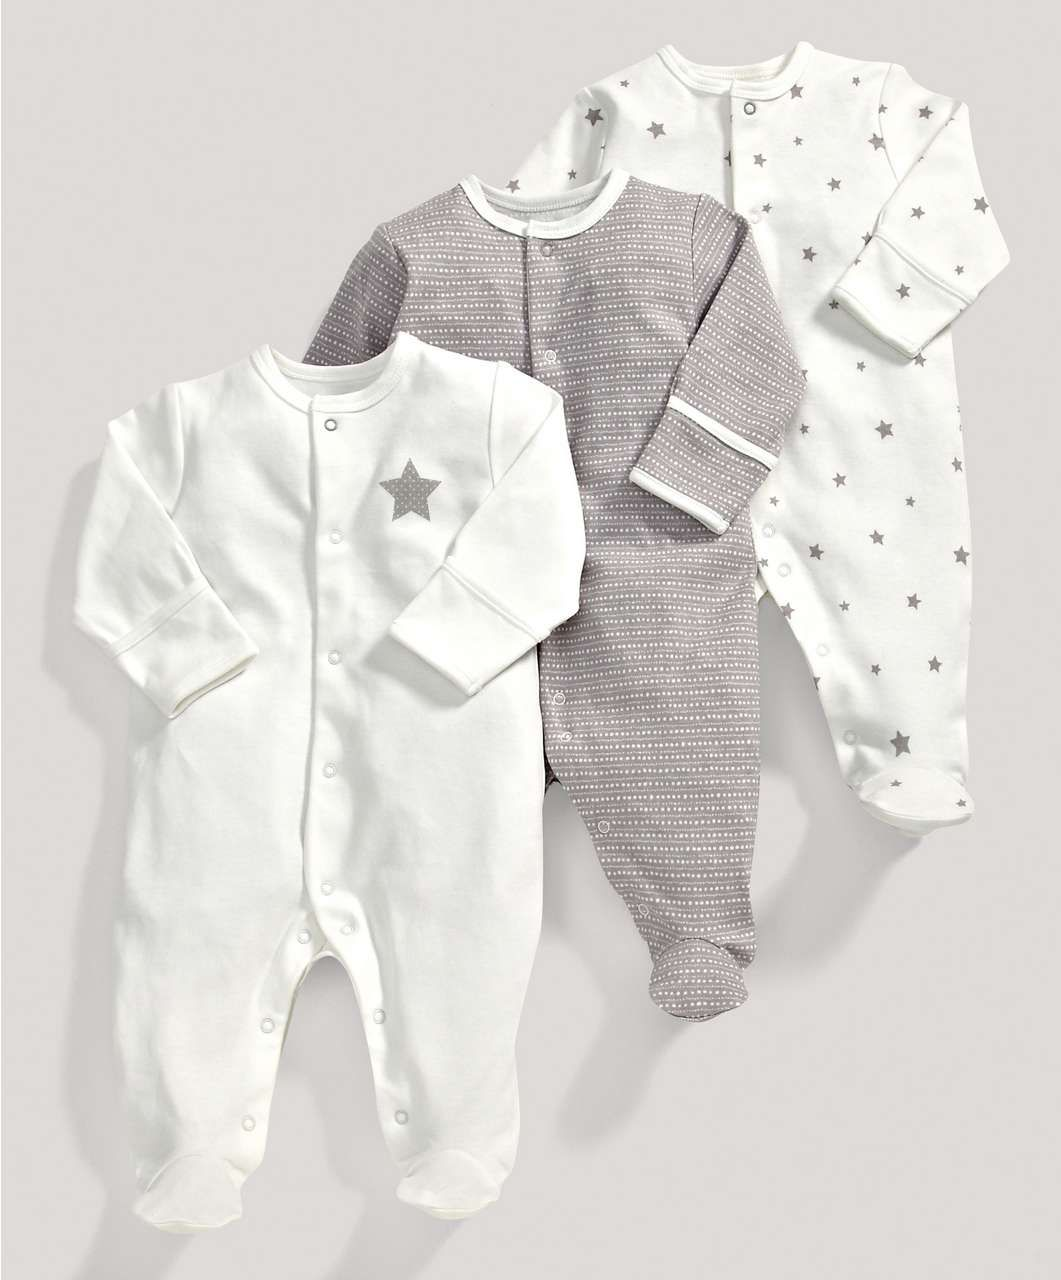 Unisex essentials three pack of millie and boris all in Baby clothing designers